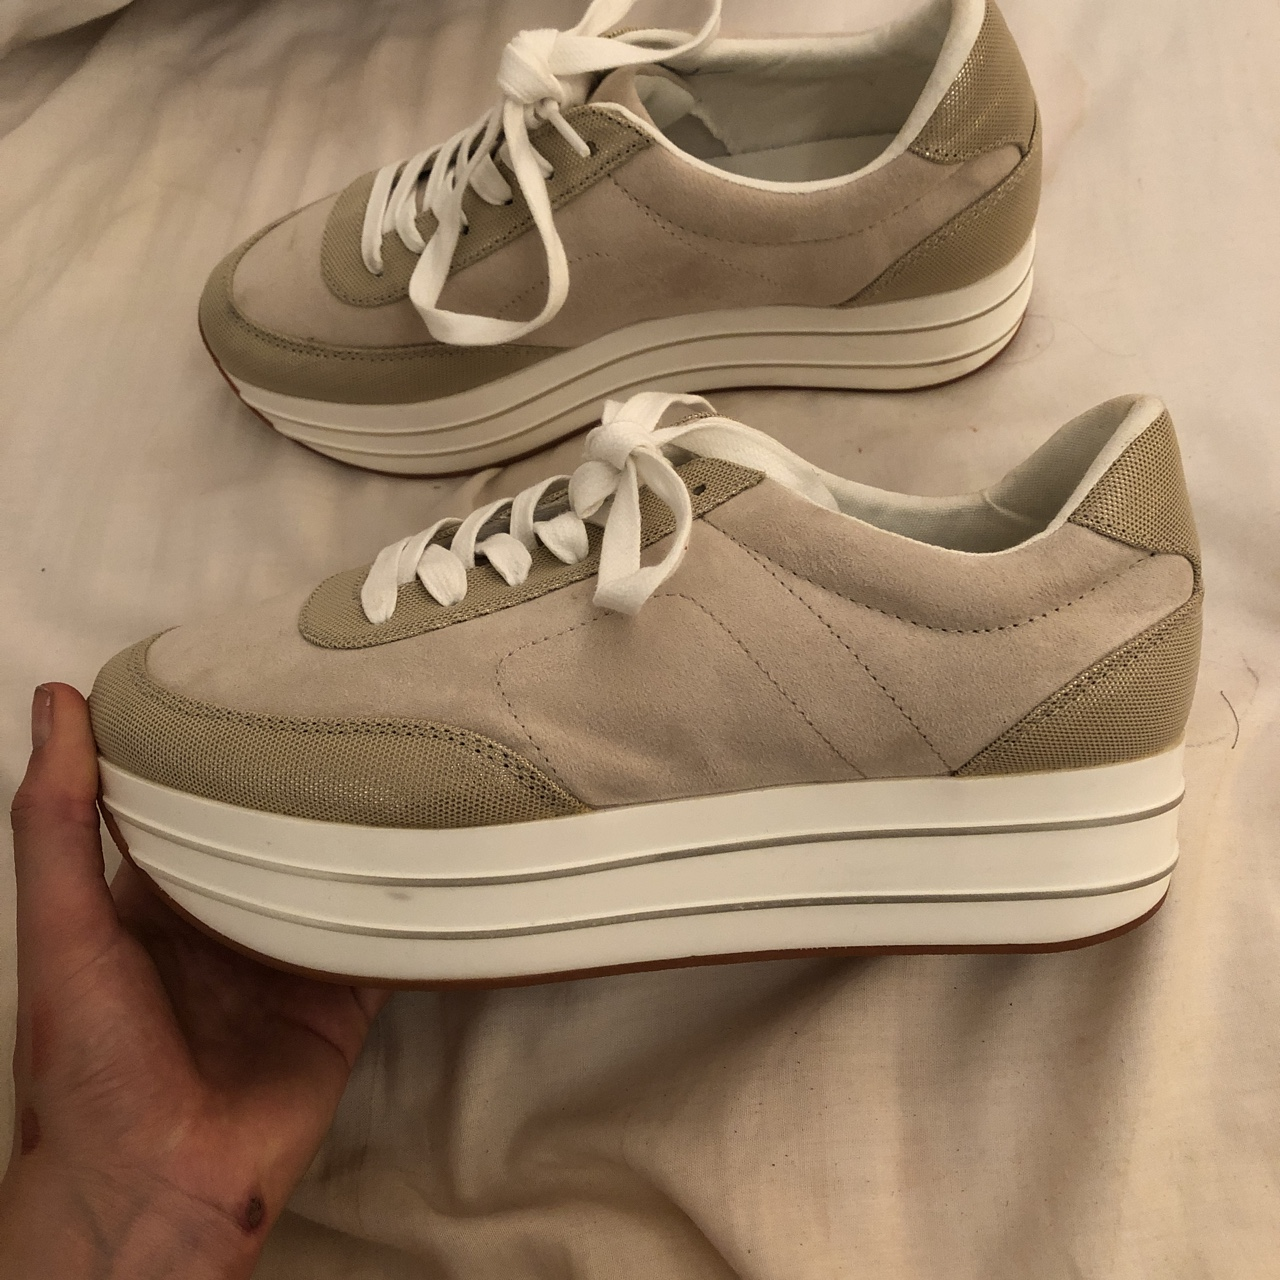 shiny sneakers zara outlet online 9ca94